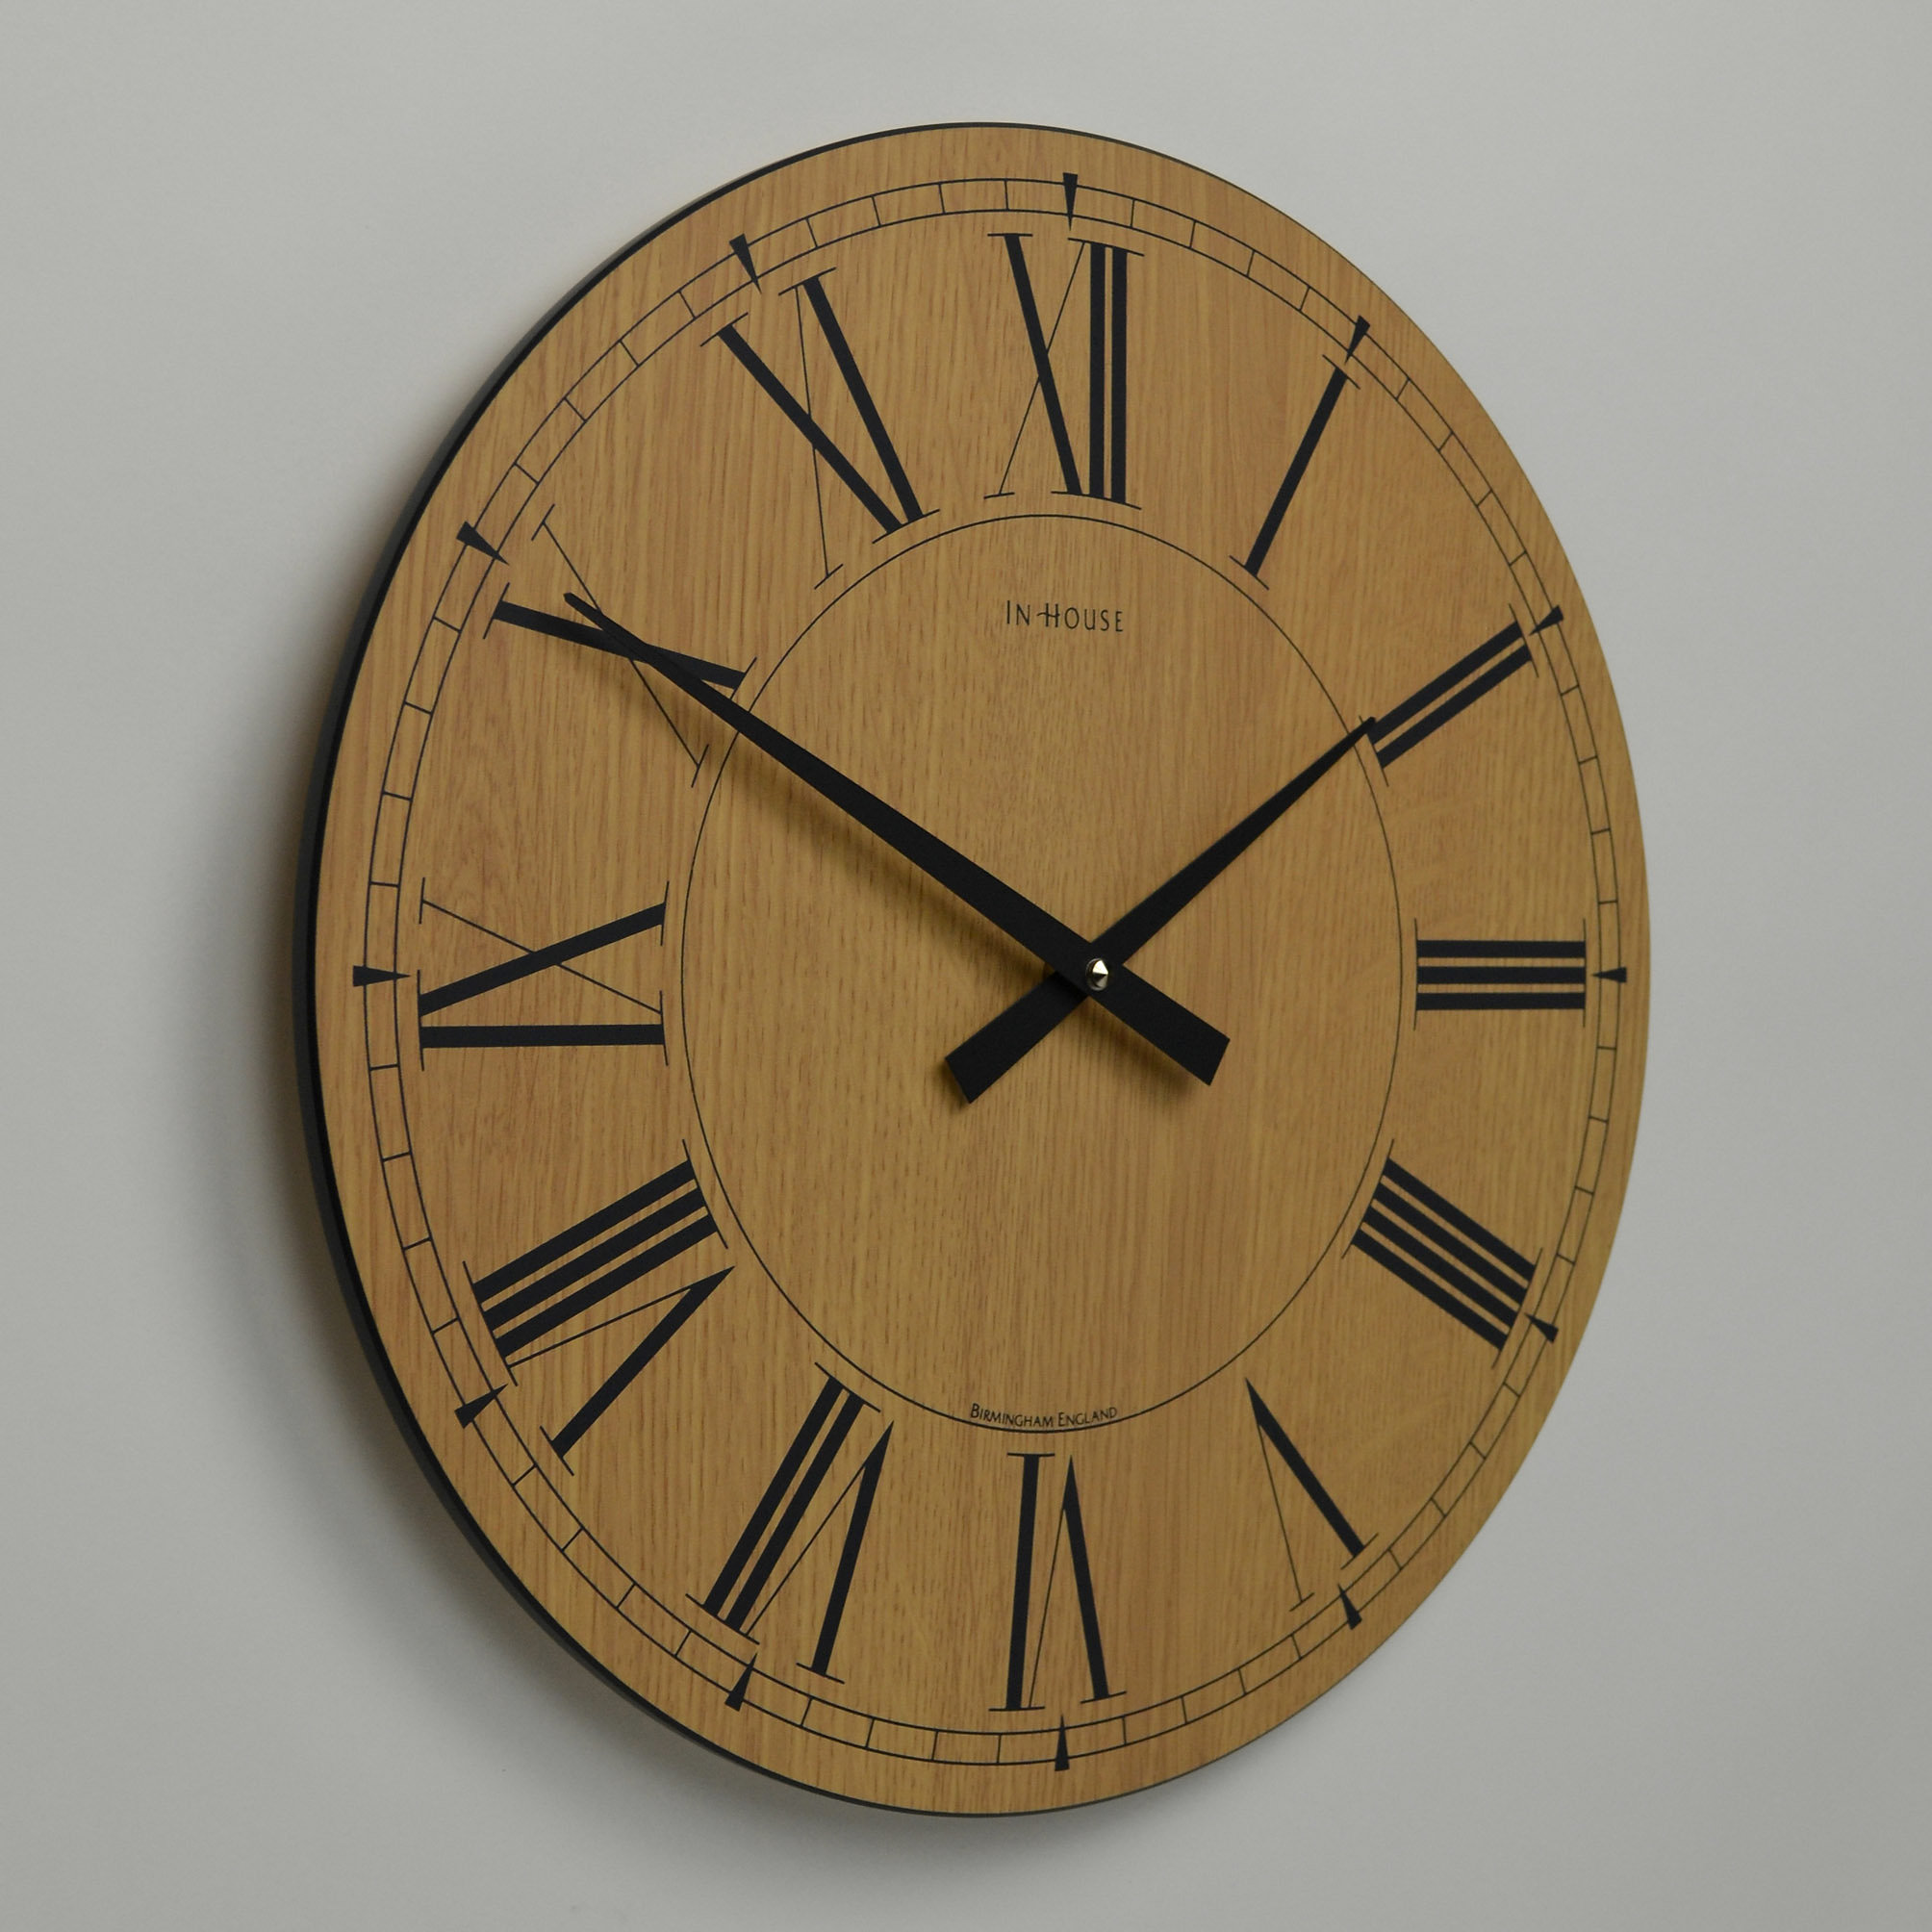 Brown wall clocks contemporary images home wall decoration ideas contemporary clocks contemporary wall clocks online oversized contemporary clocks handmade in england uk inhouseclocks amipublicfo images amipublicfo Image collections